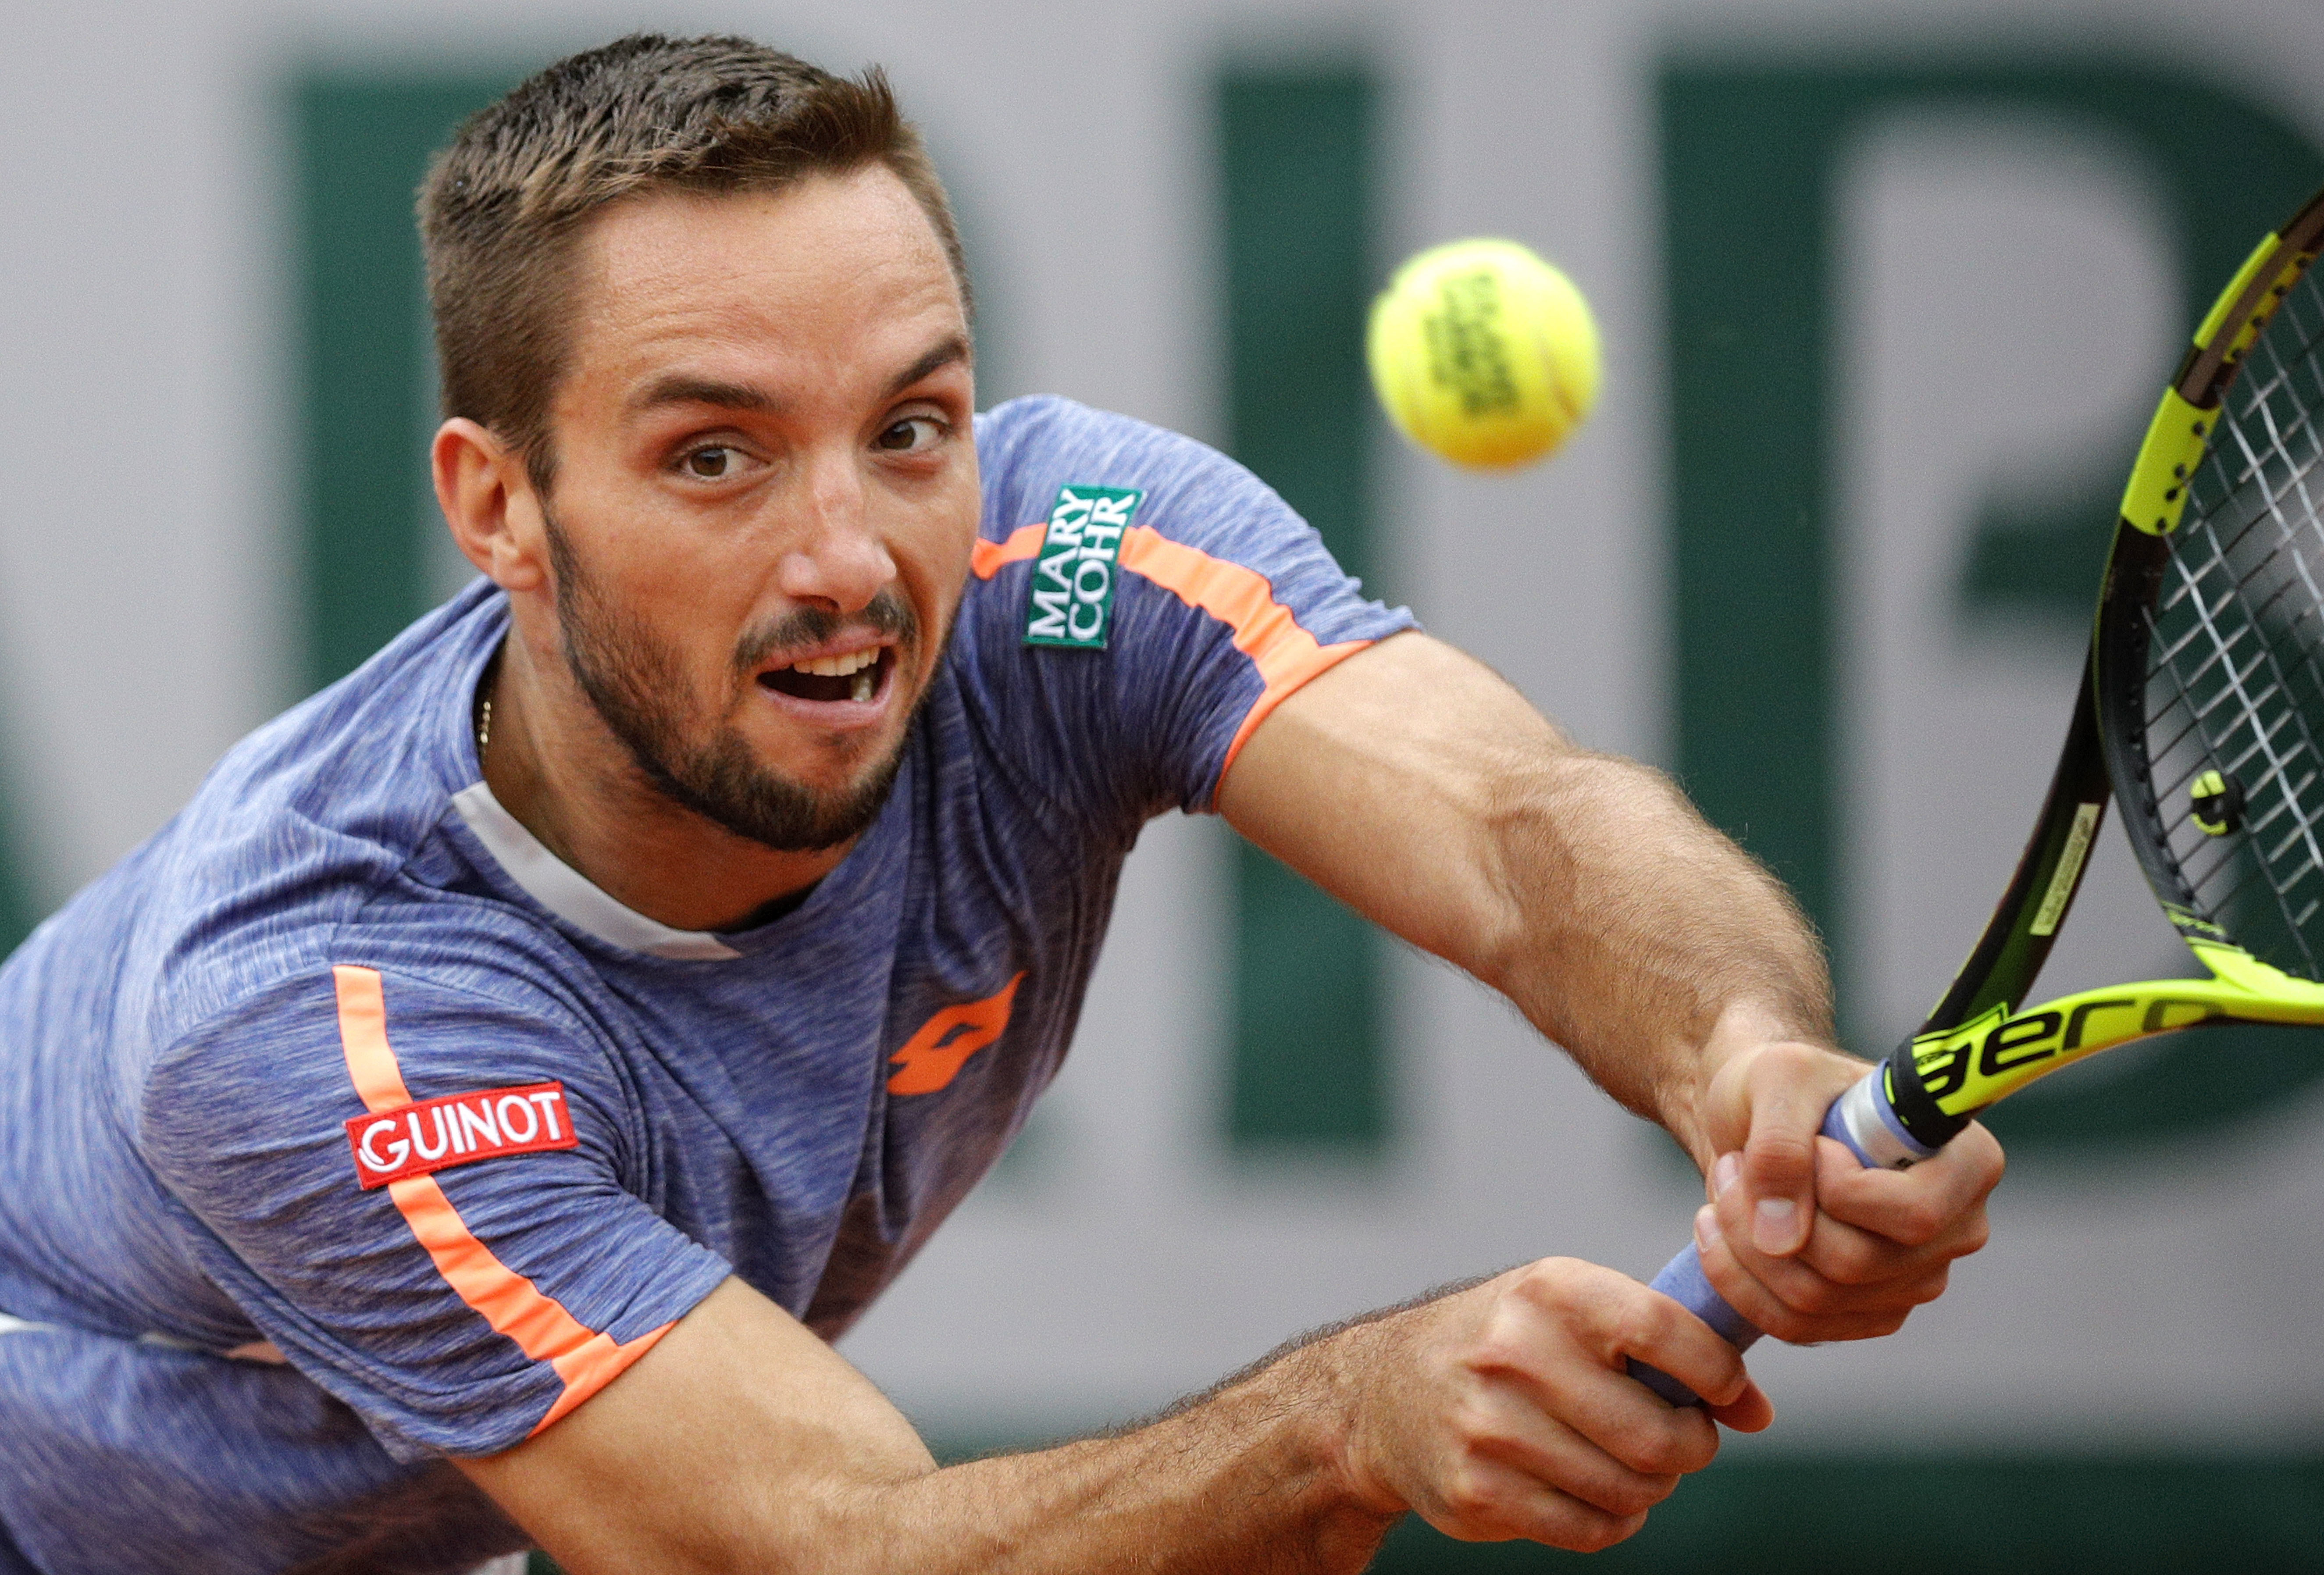 FILE - In this Sunday, May 29, 2016 file photo, Serbia's Viktor Troicki returns the ball to Switzerland's Stan Wawrinka during their fourth round match of the French Open tennis tournament at the Roland Garros stadium, in Paris. Viktor Troicki let the cha